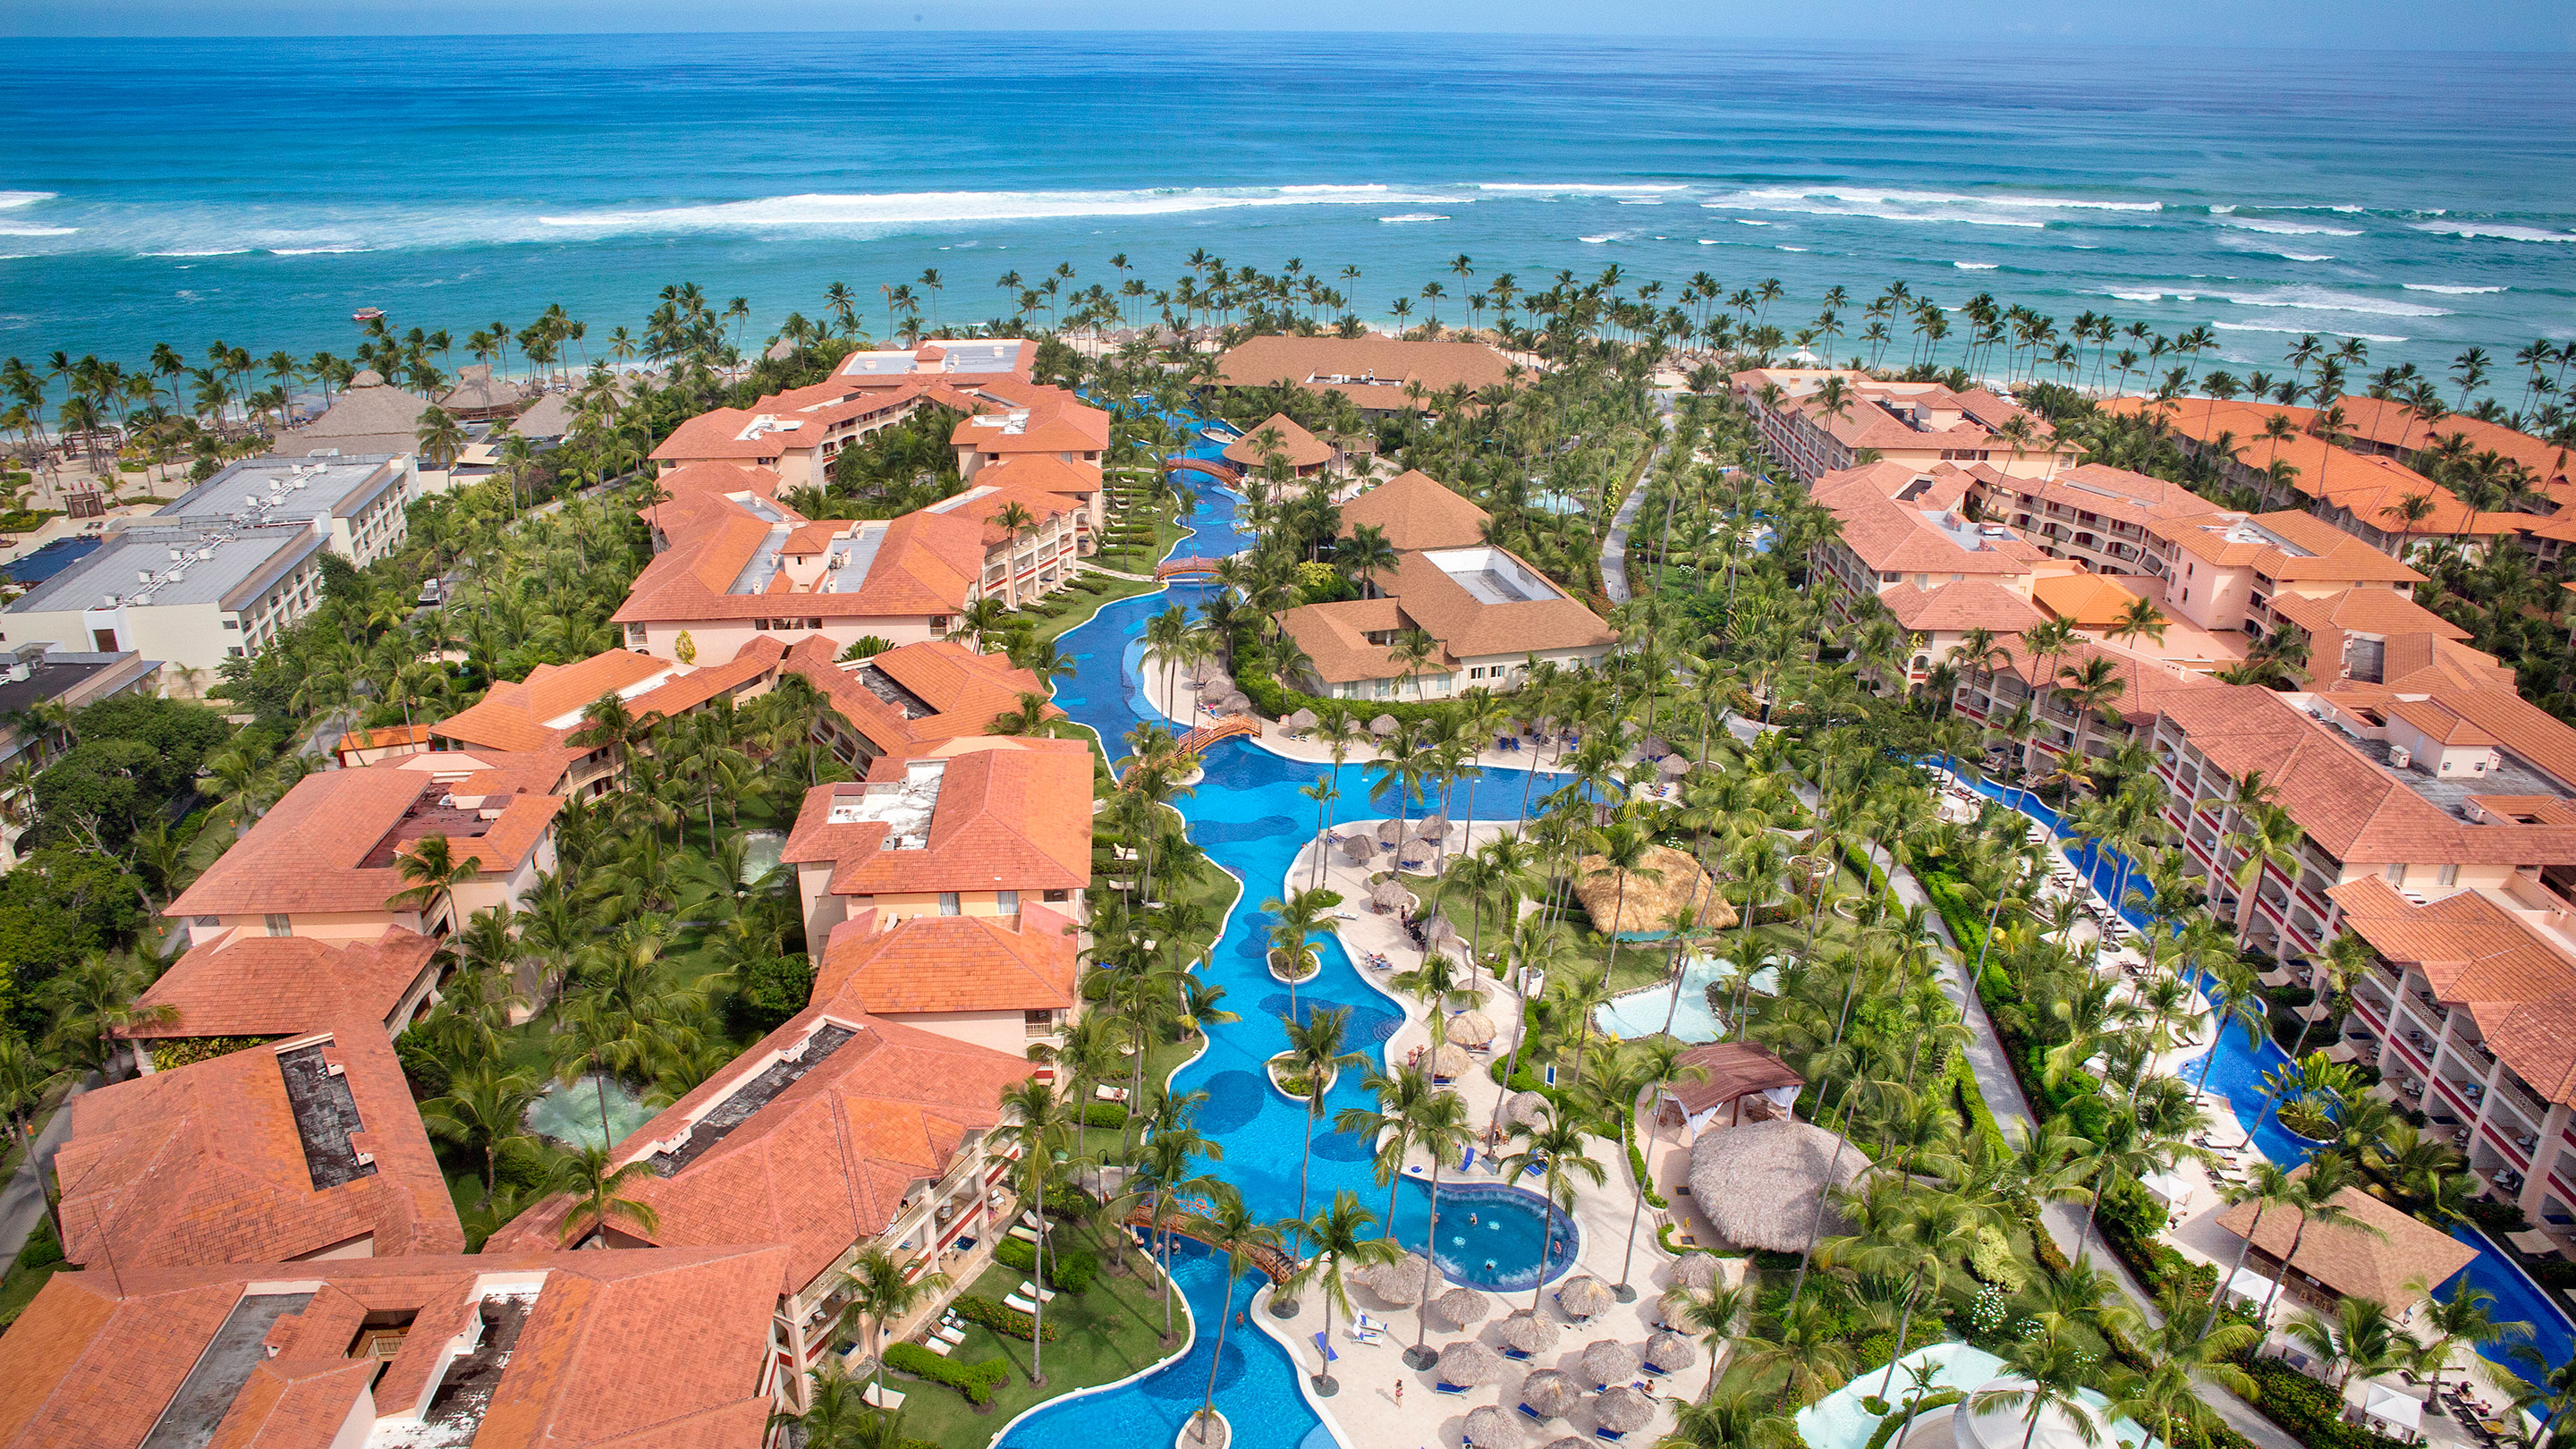 Majestic Colonial Punta Cana  - Aerial View Resort